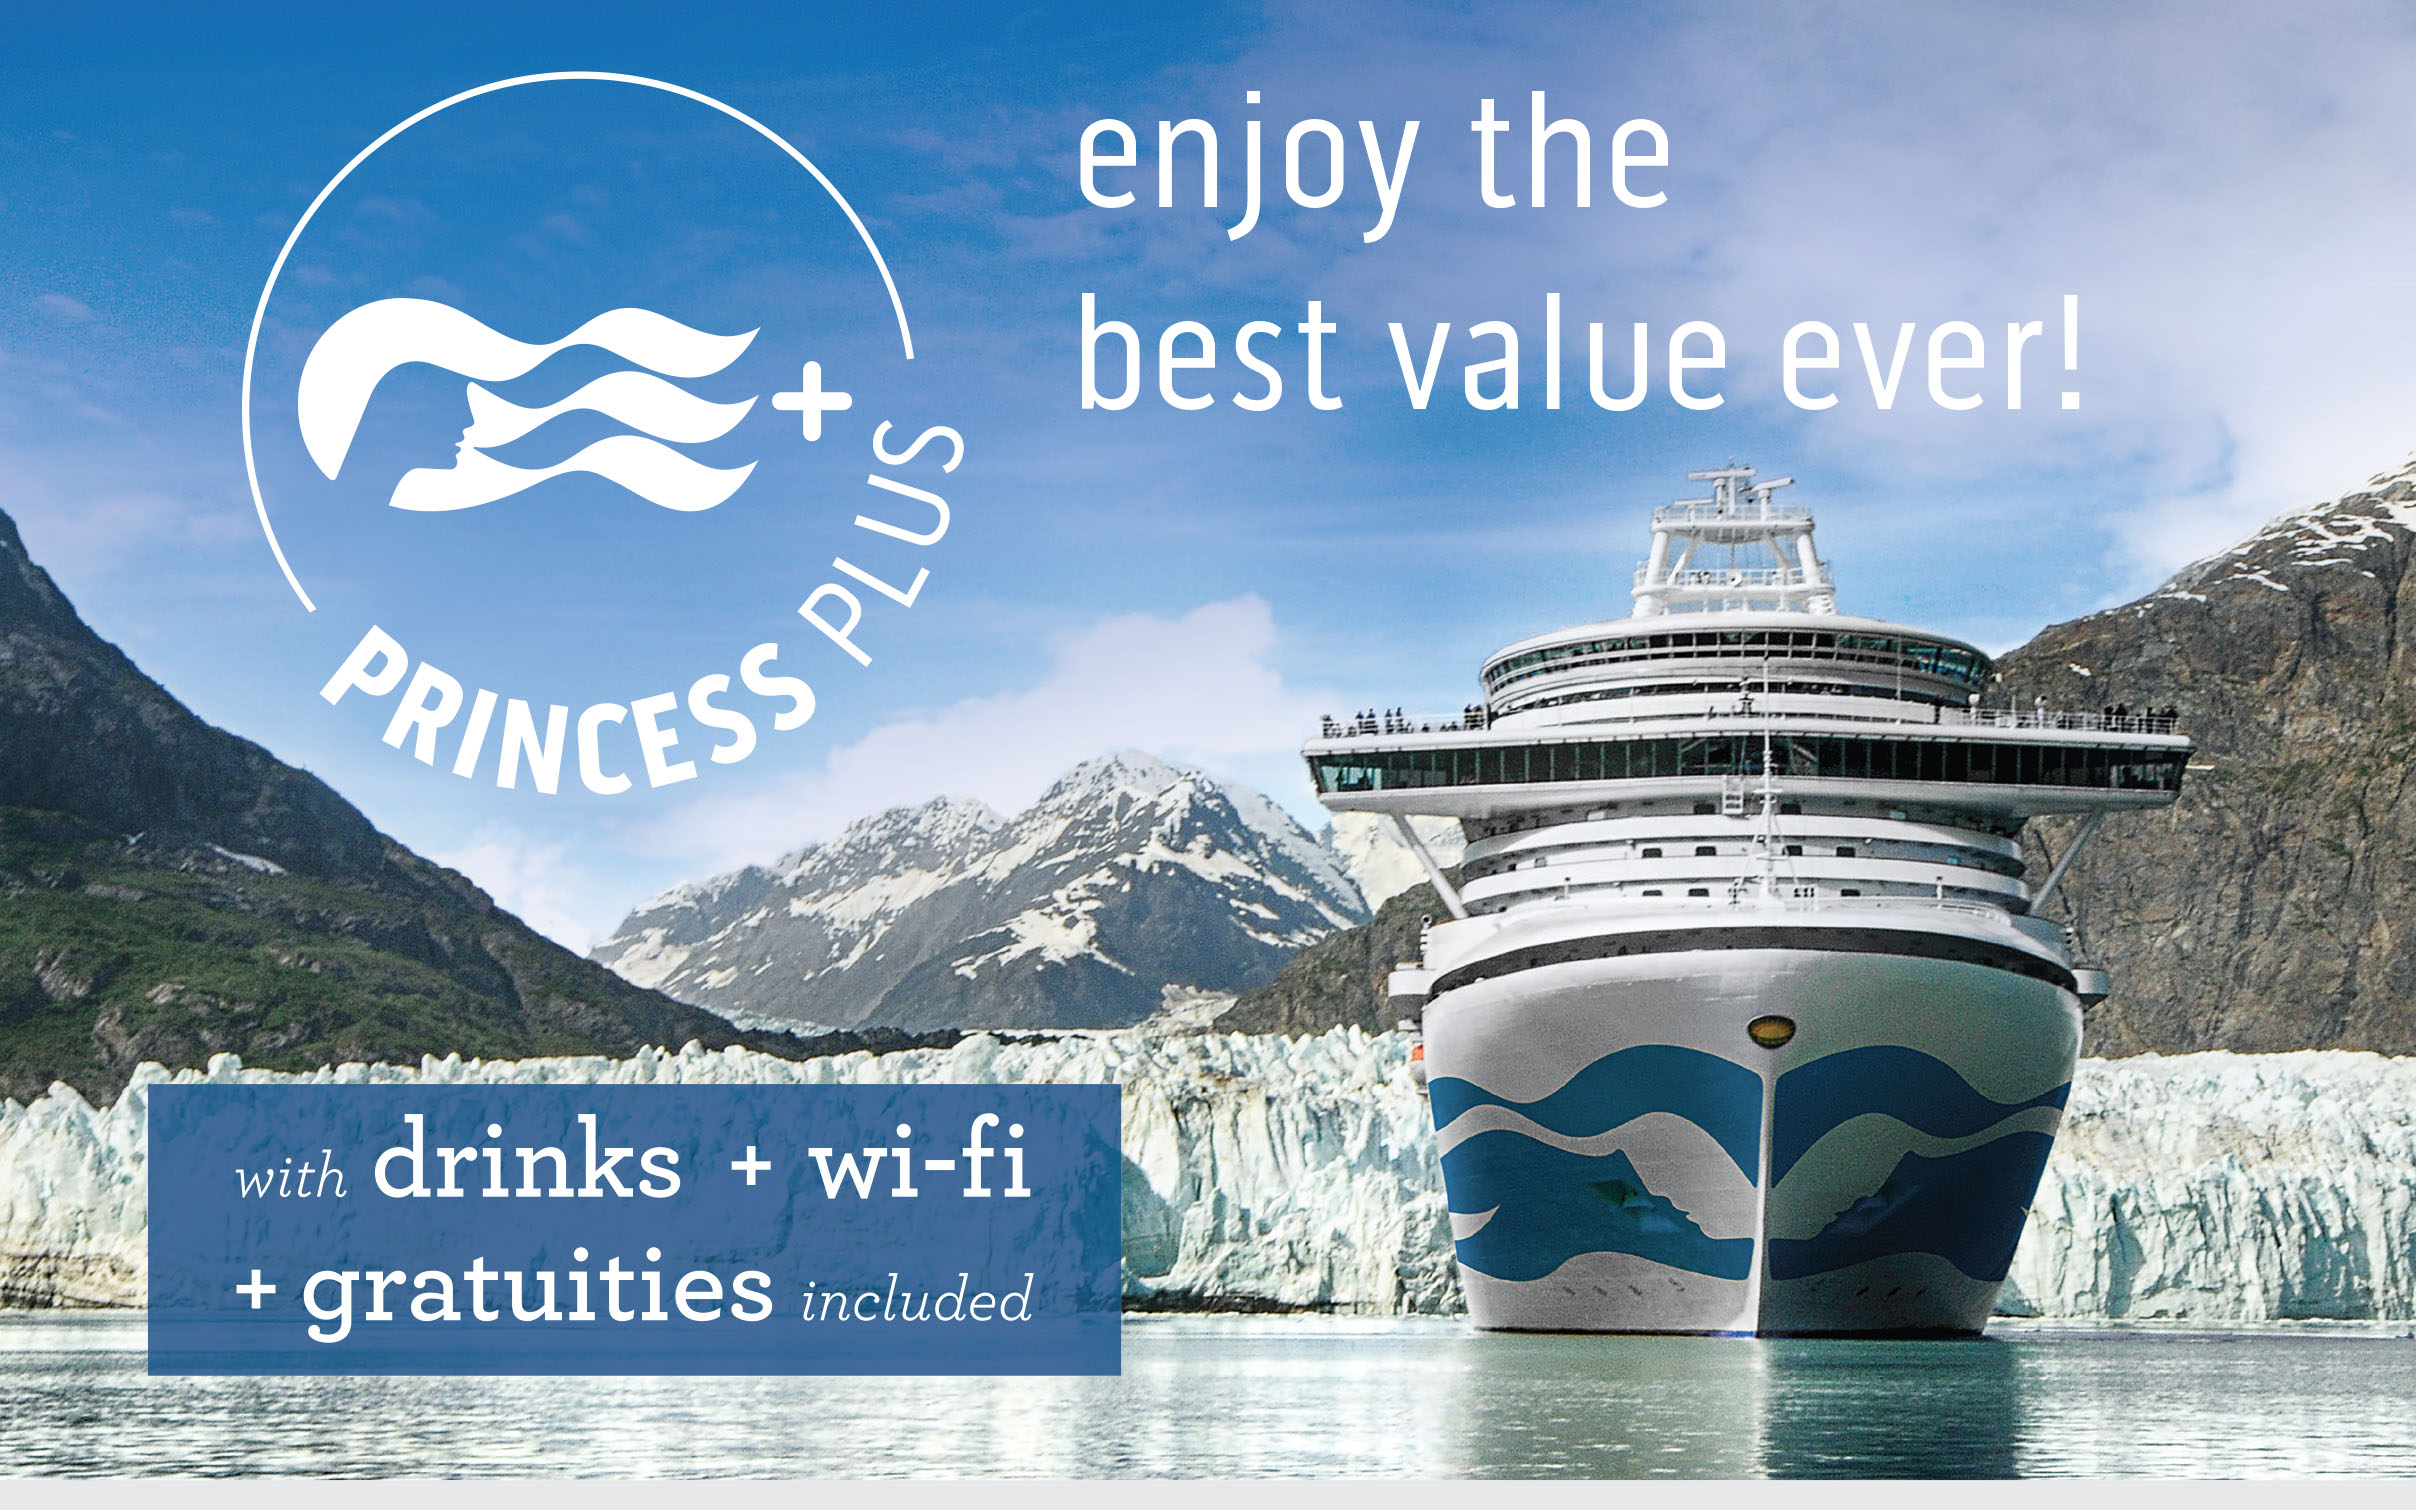 Princess PLUS - FREE Drinks + FREE Wi-Fi + FREE gratuities